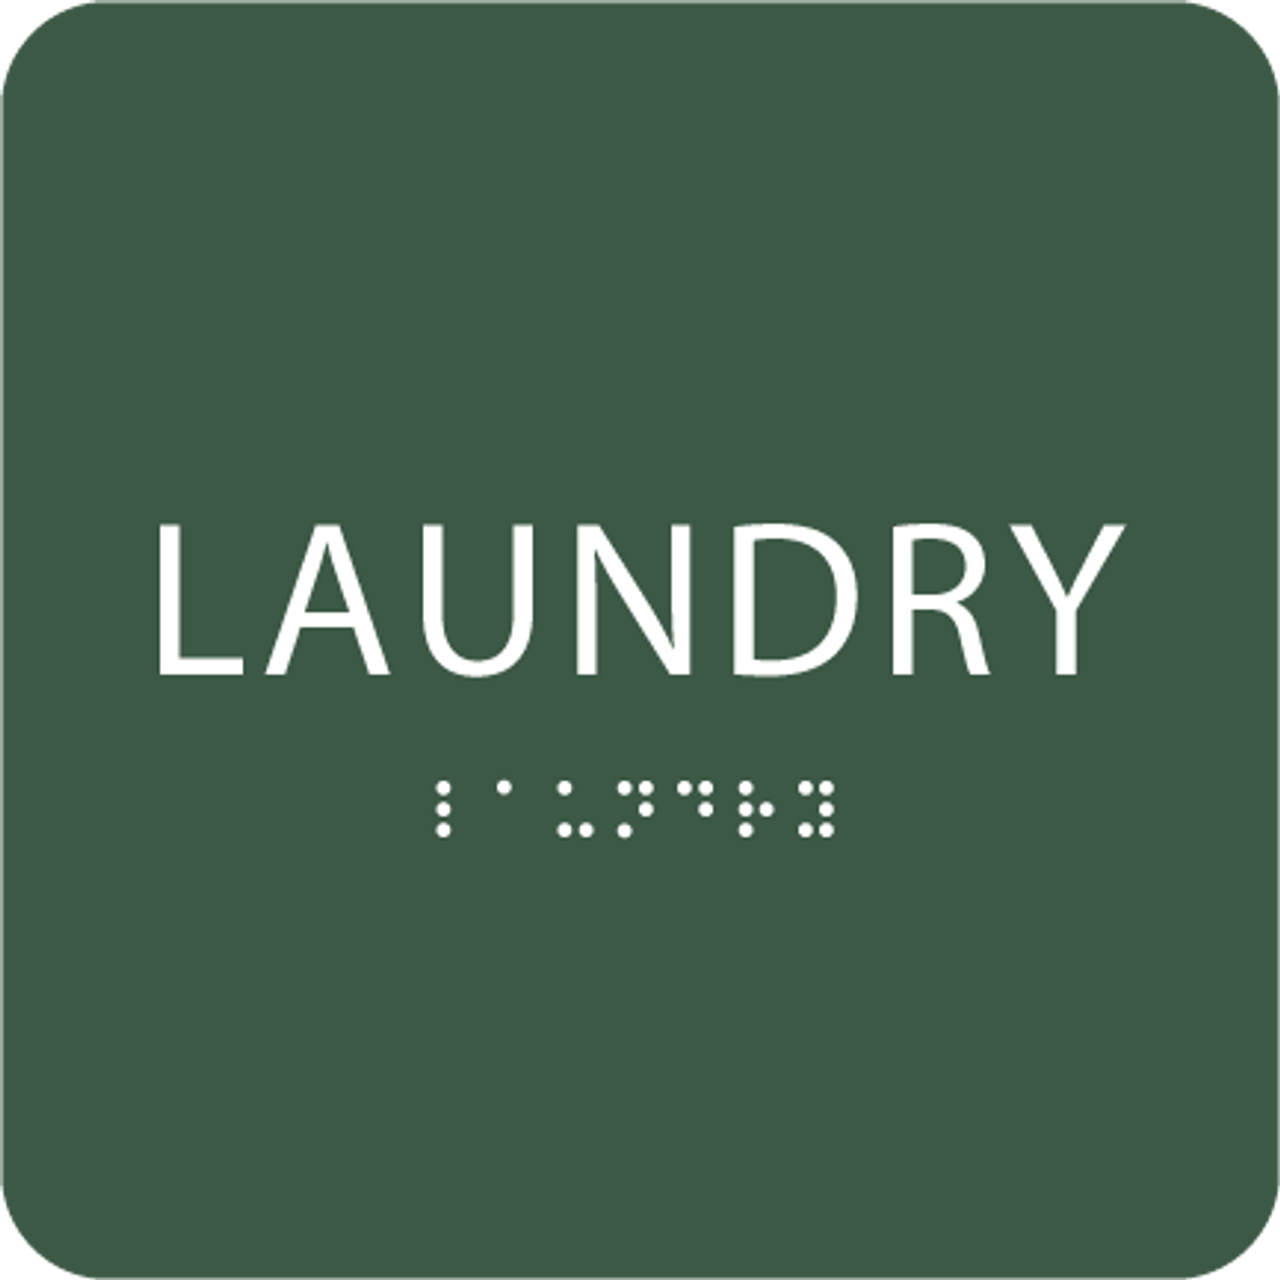 Green Laundry Tactile Sign